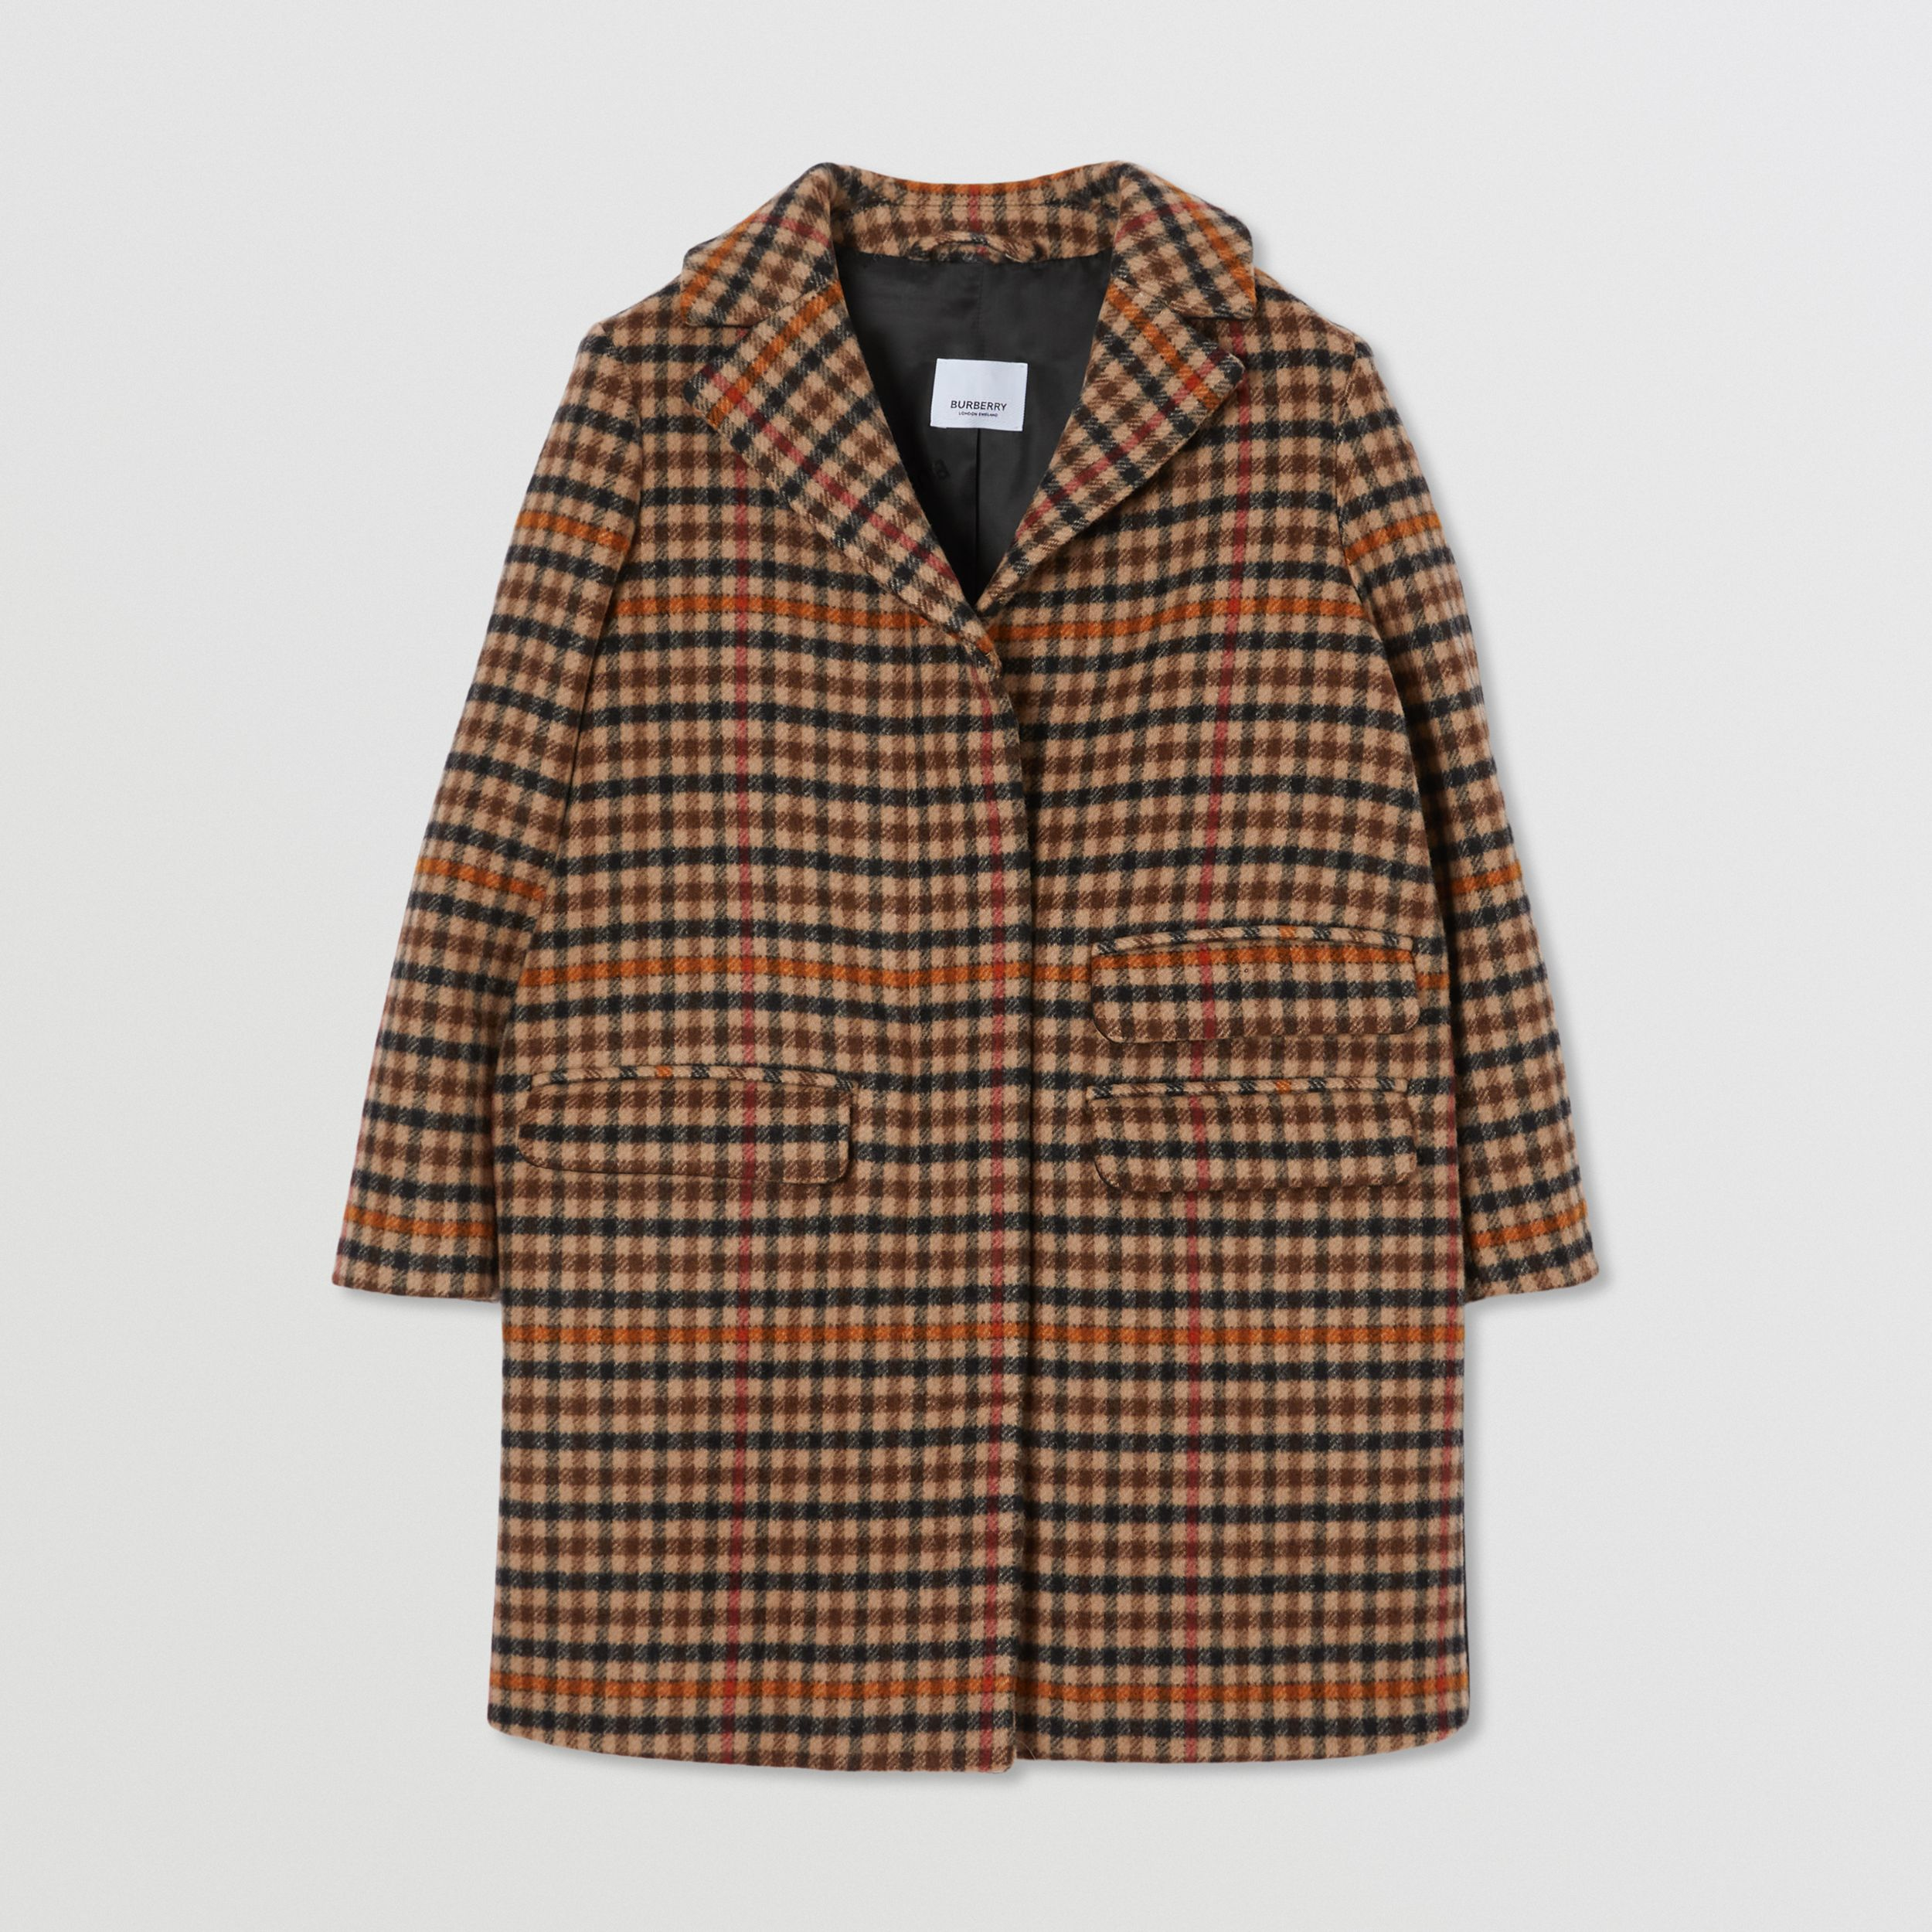 Embroidered Monogram Motif Check Wool Tailored Coat in Camel | Burberry Hong Kong S.A.R. - 1